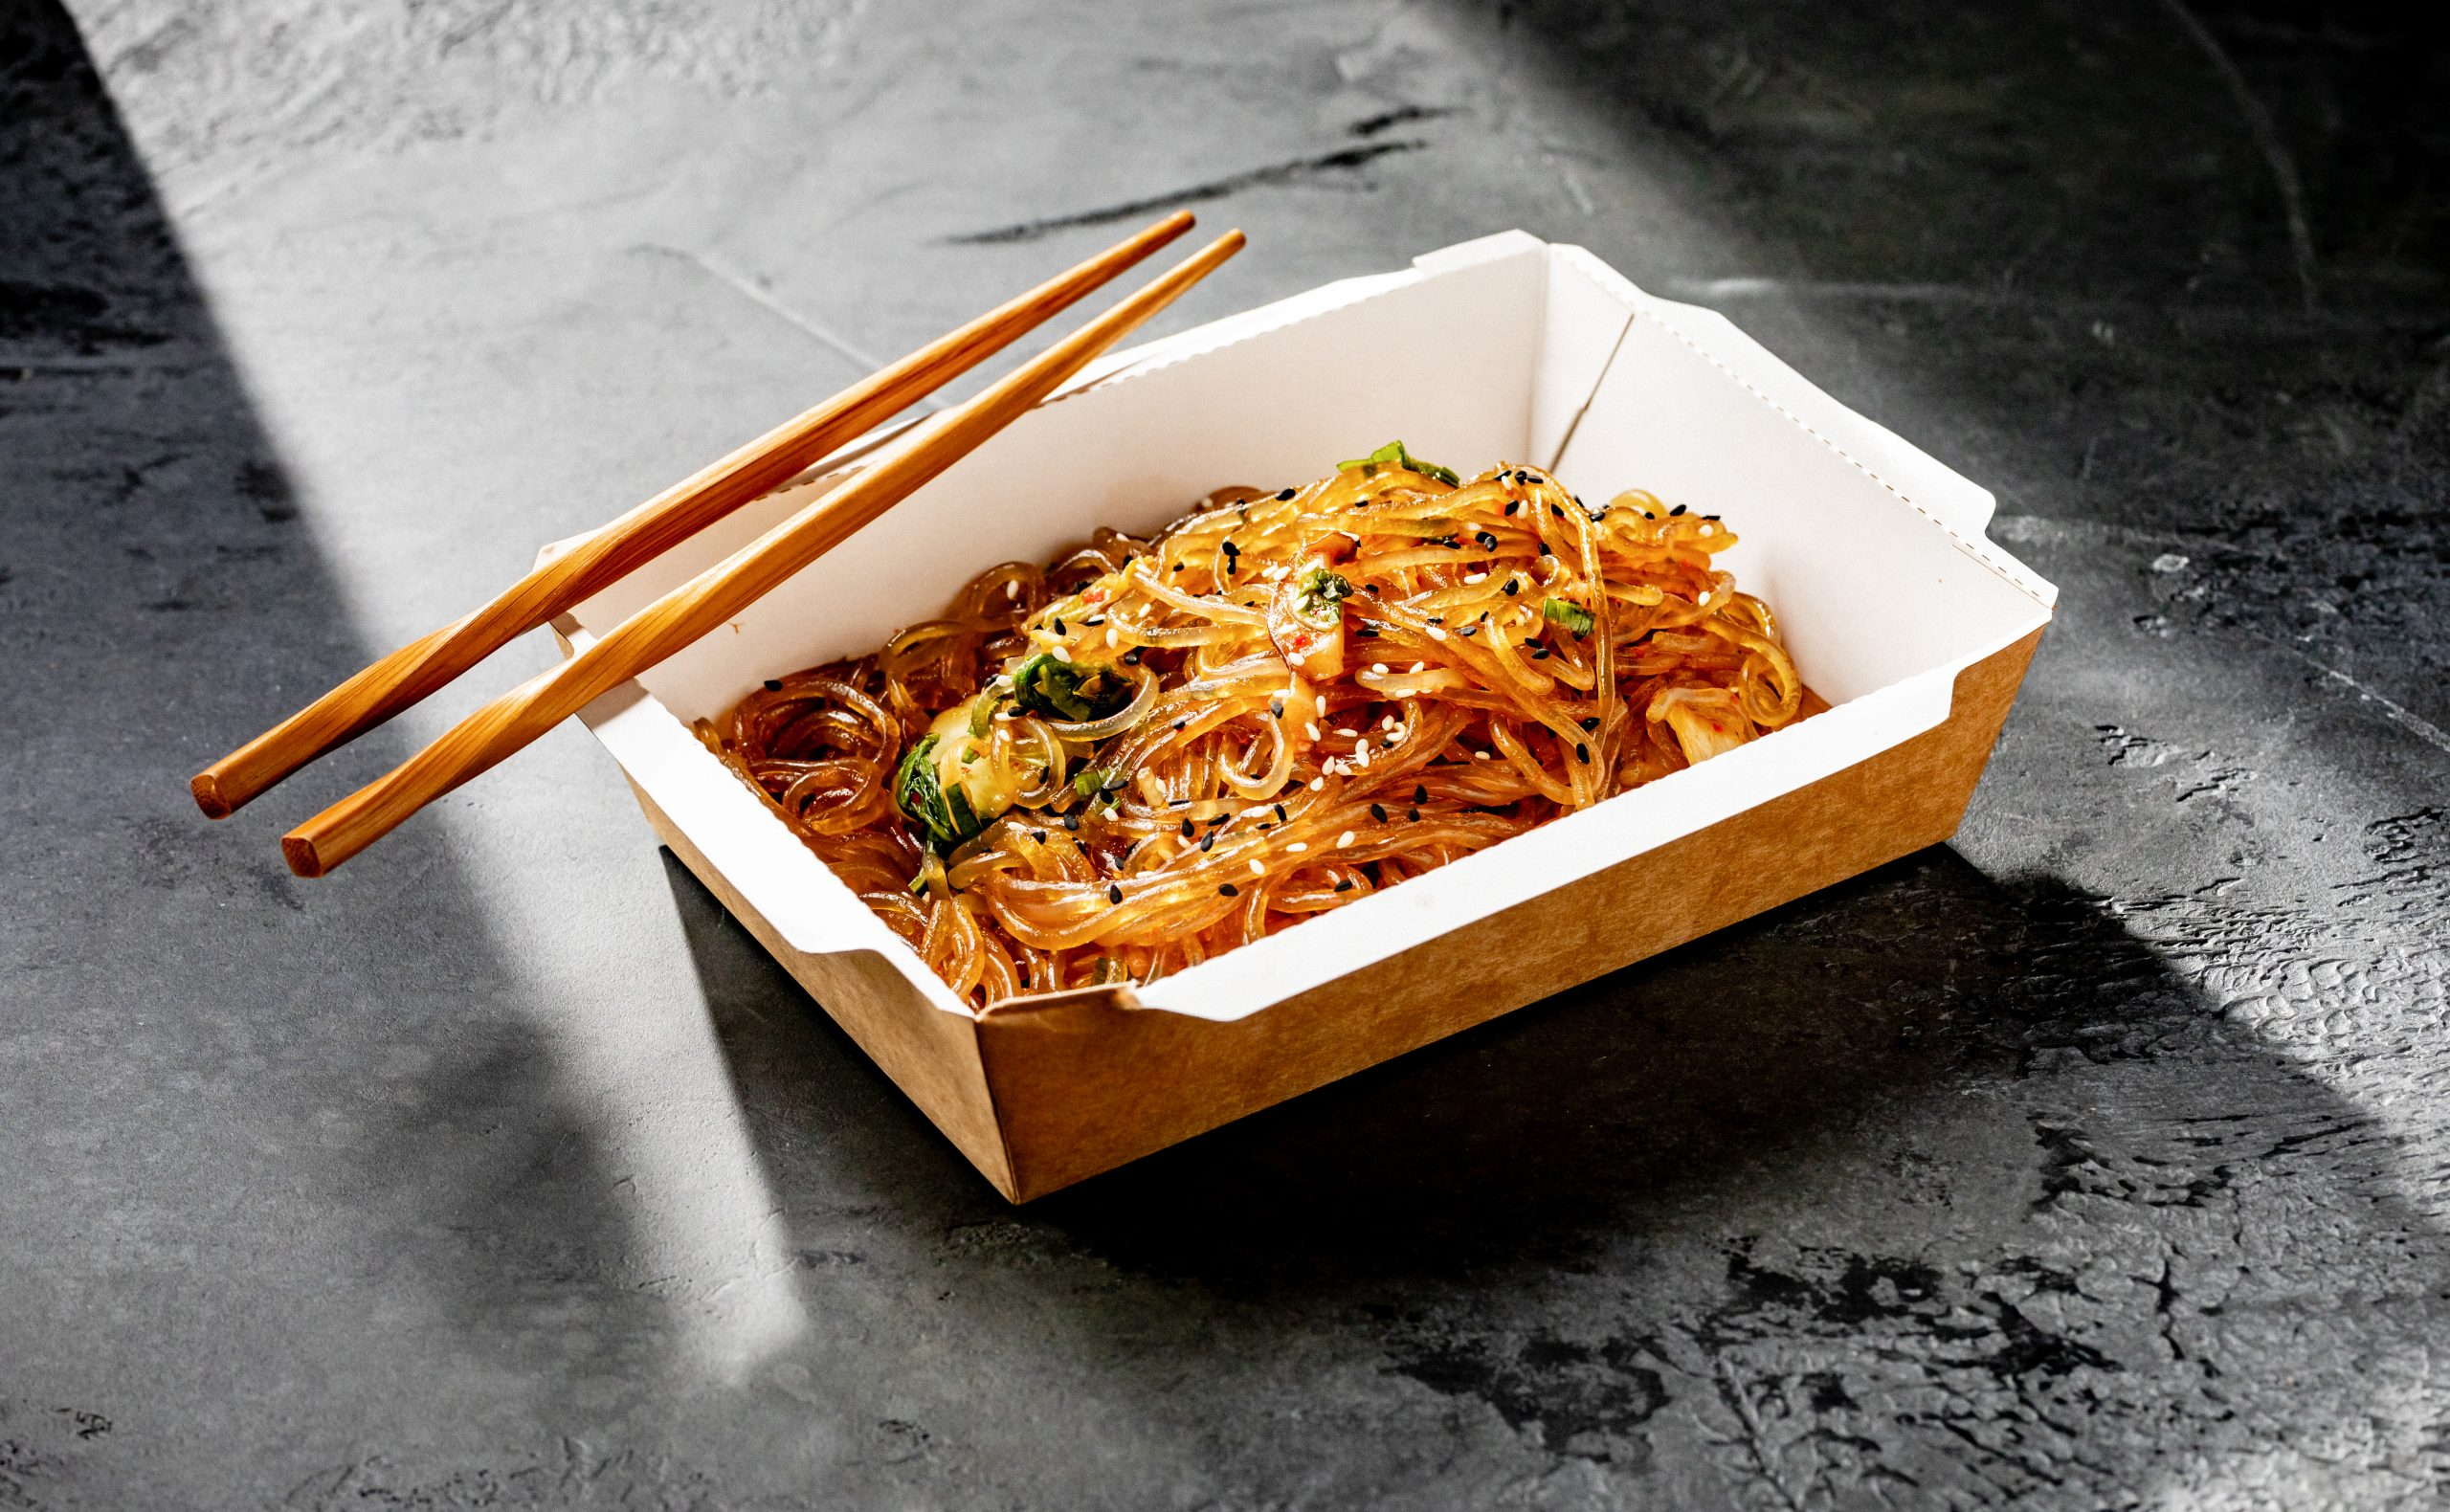 a to-go meal from E&O Kitchen with chopsticks